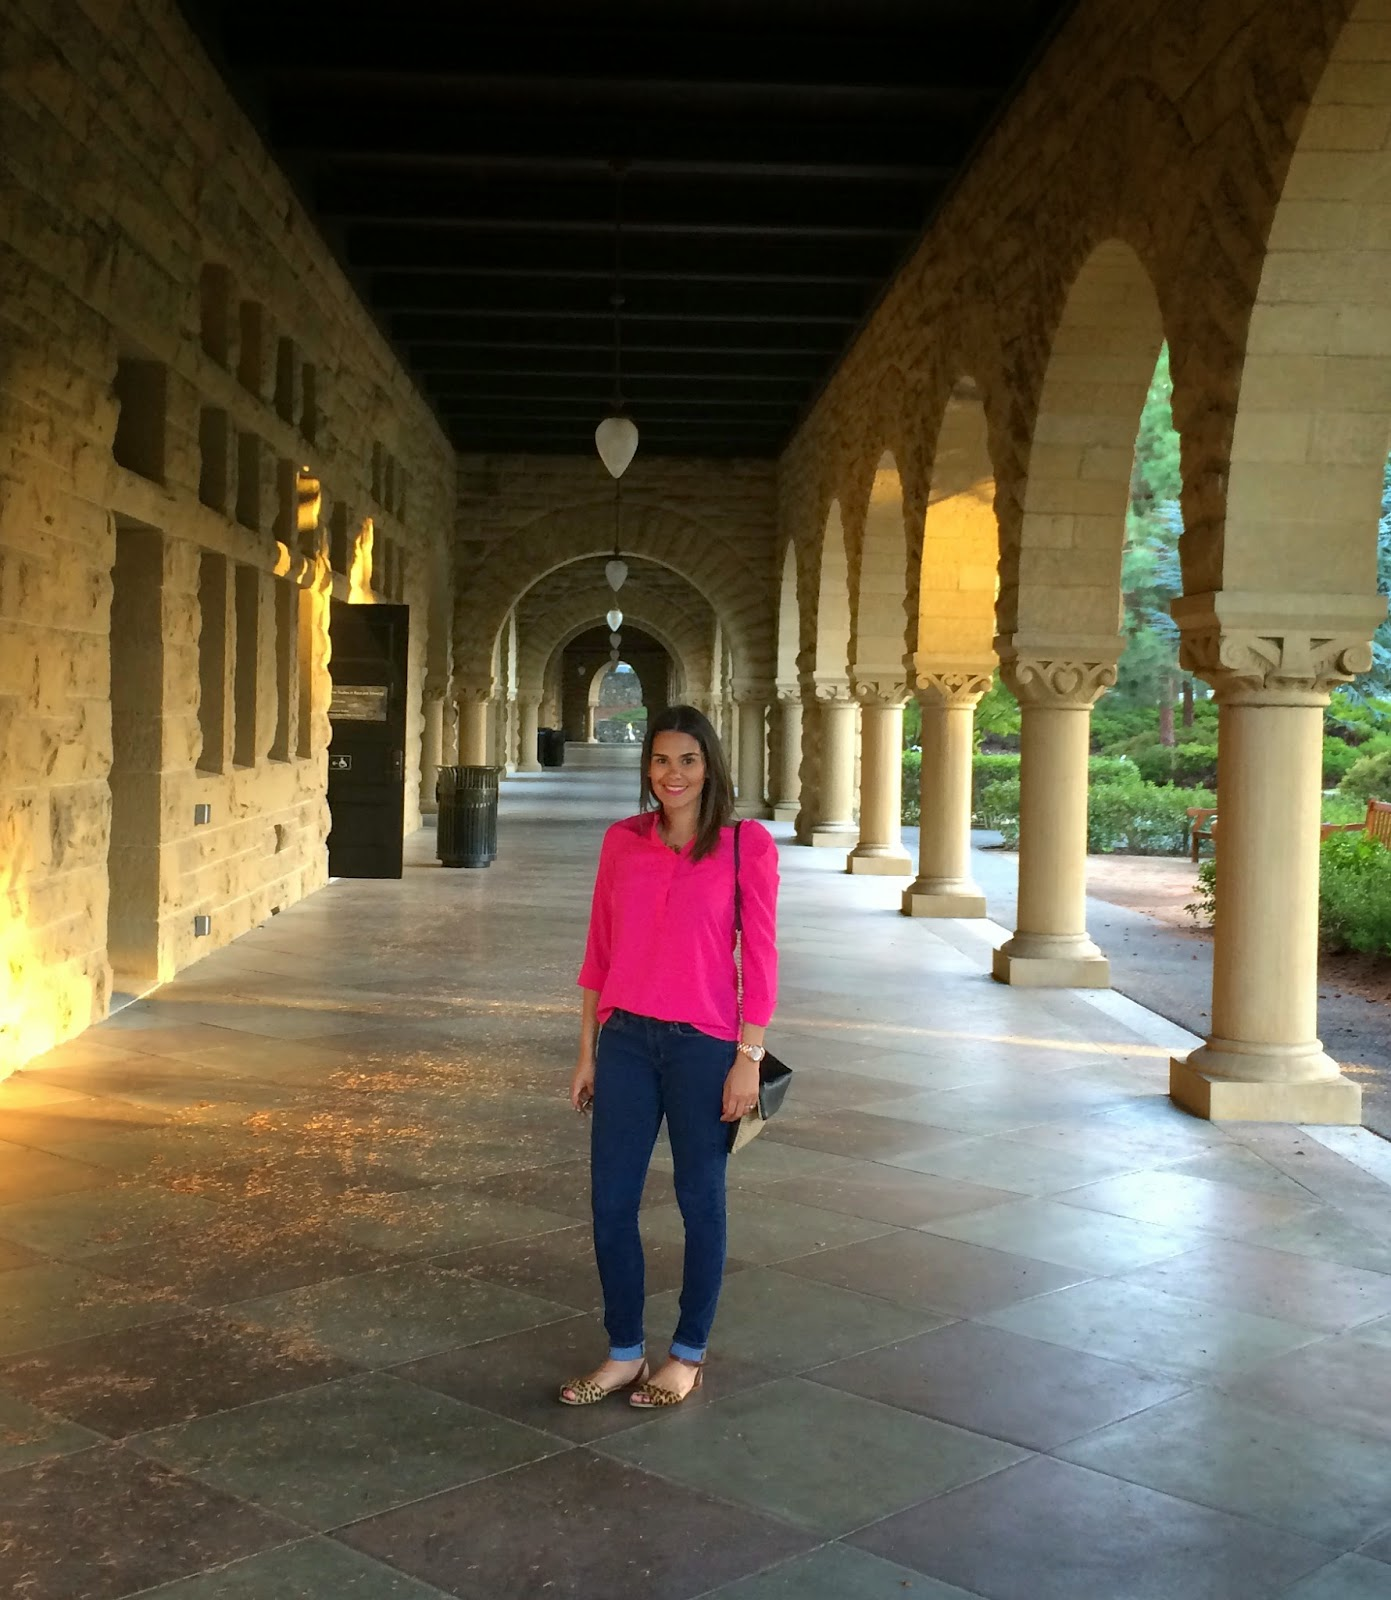 Marifer at a corridor of the Main Quad